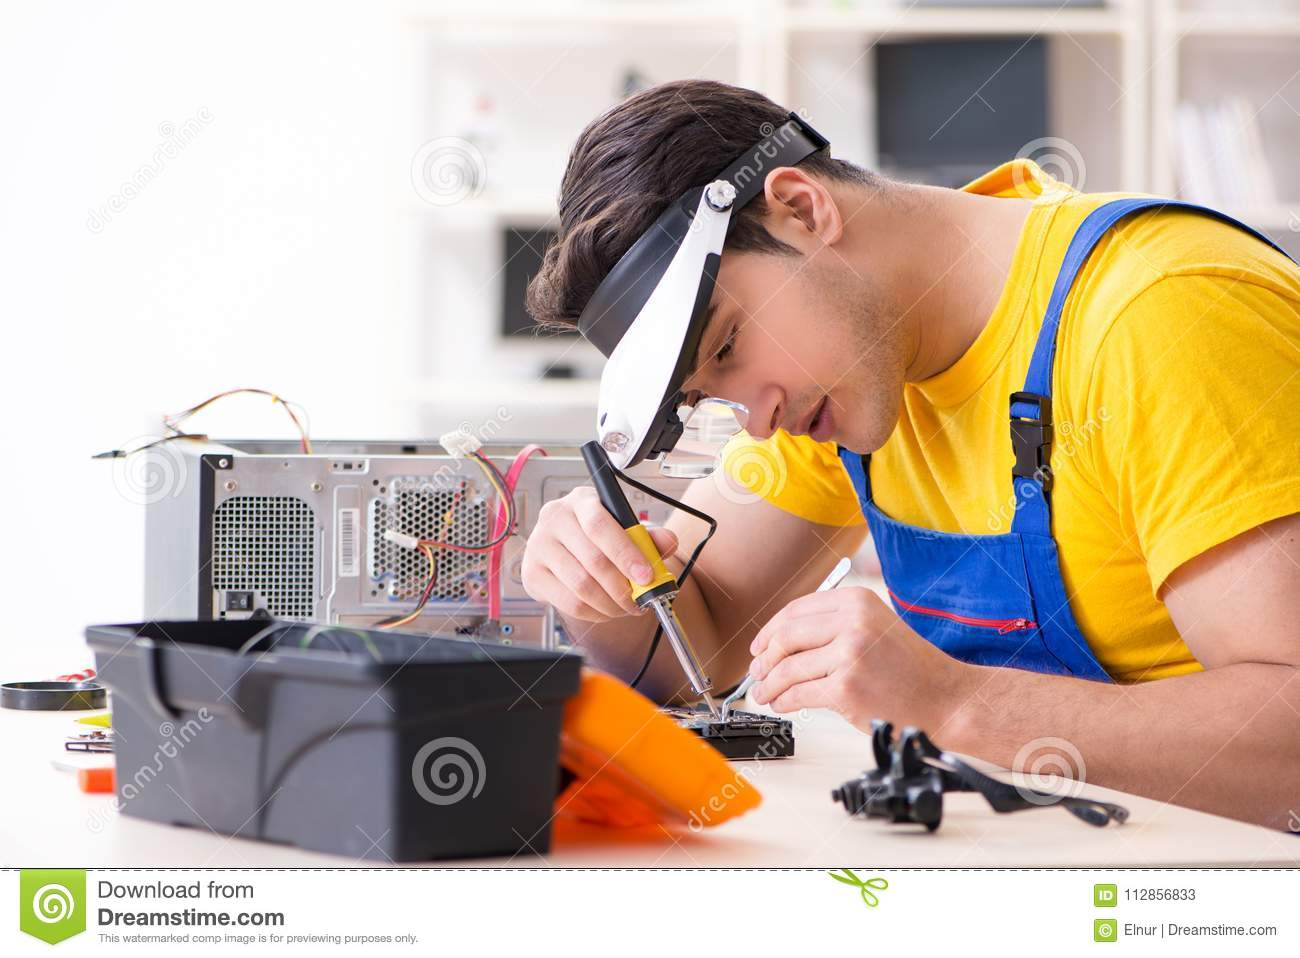 The Hard Drive Repair And Data Recovery Specialist Working